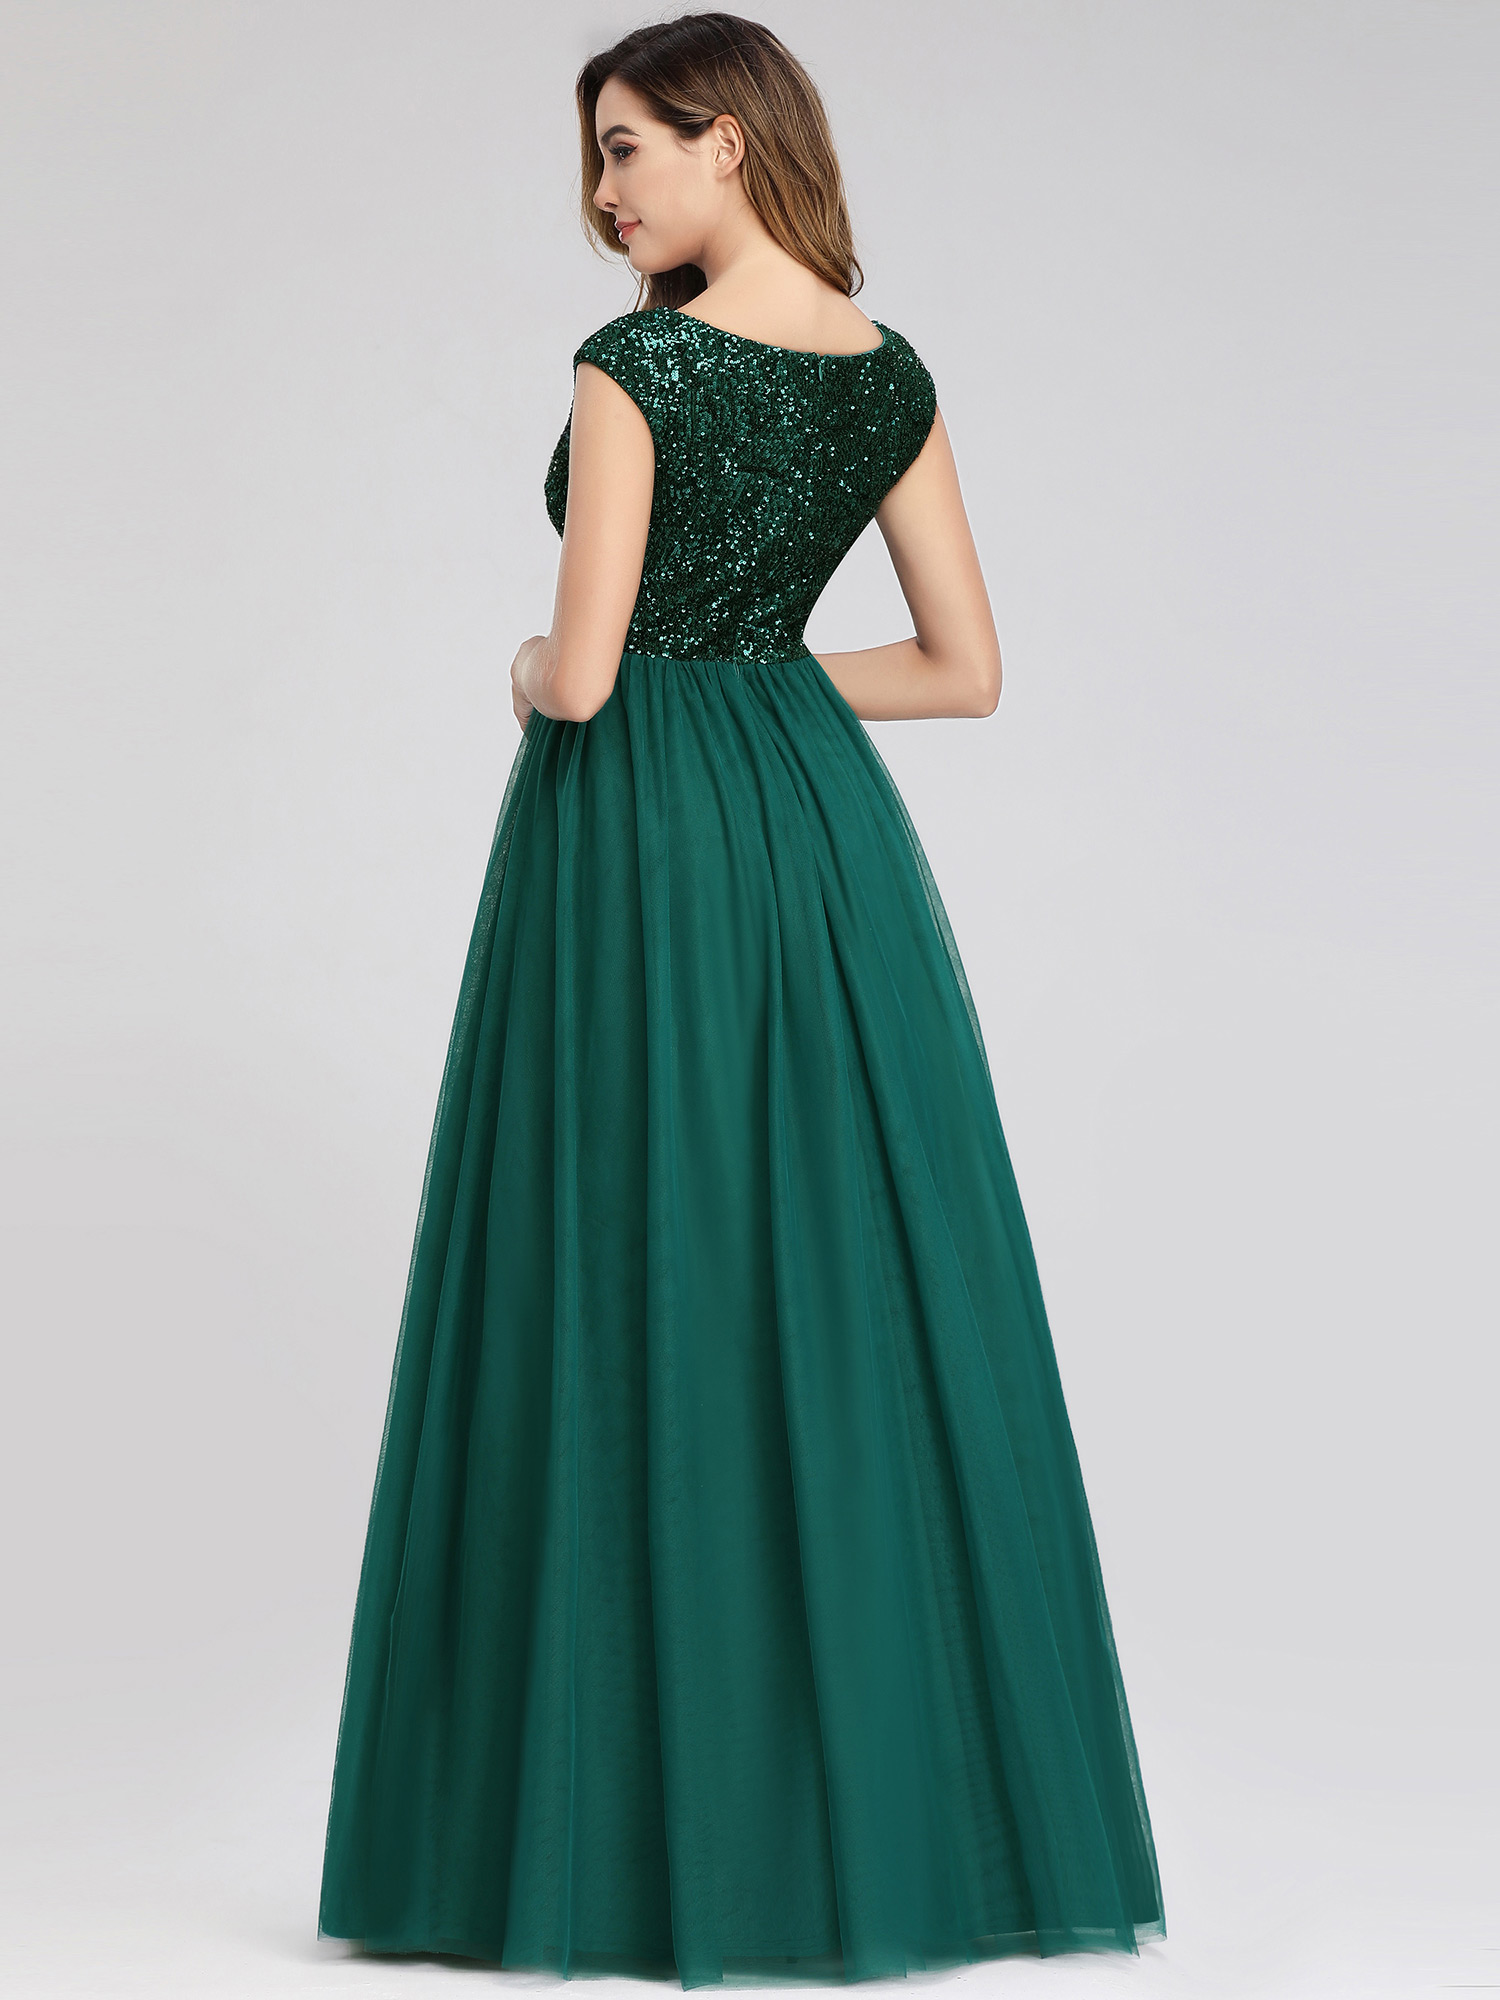 Ever-Pretty-A-Line-Bridesmaid-Dresses-Long-Chiffon-Lace-Wedding-Prom-Gown-00983 thumbnail 5